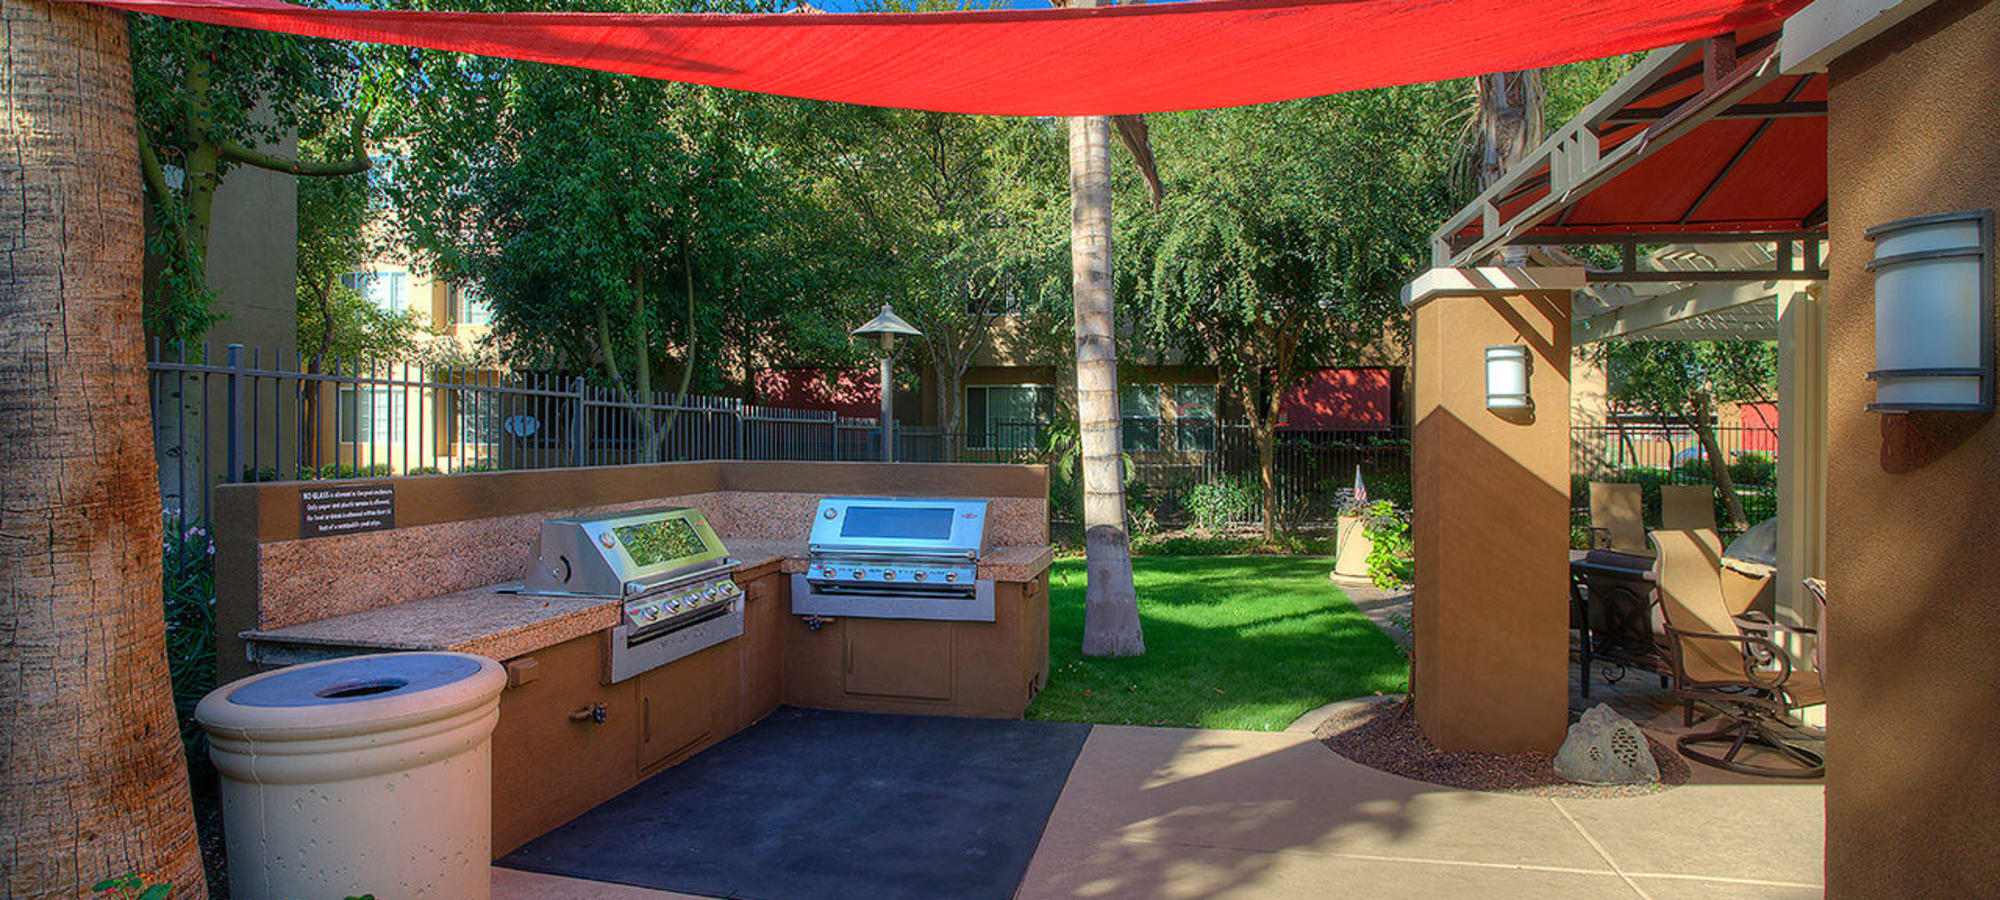 Covered outdoor grilling station at Park on Bell in Phoenix, Arizona